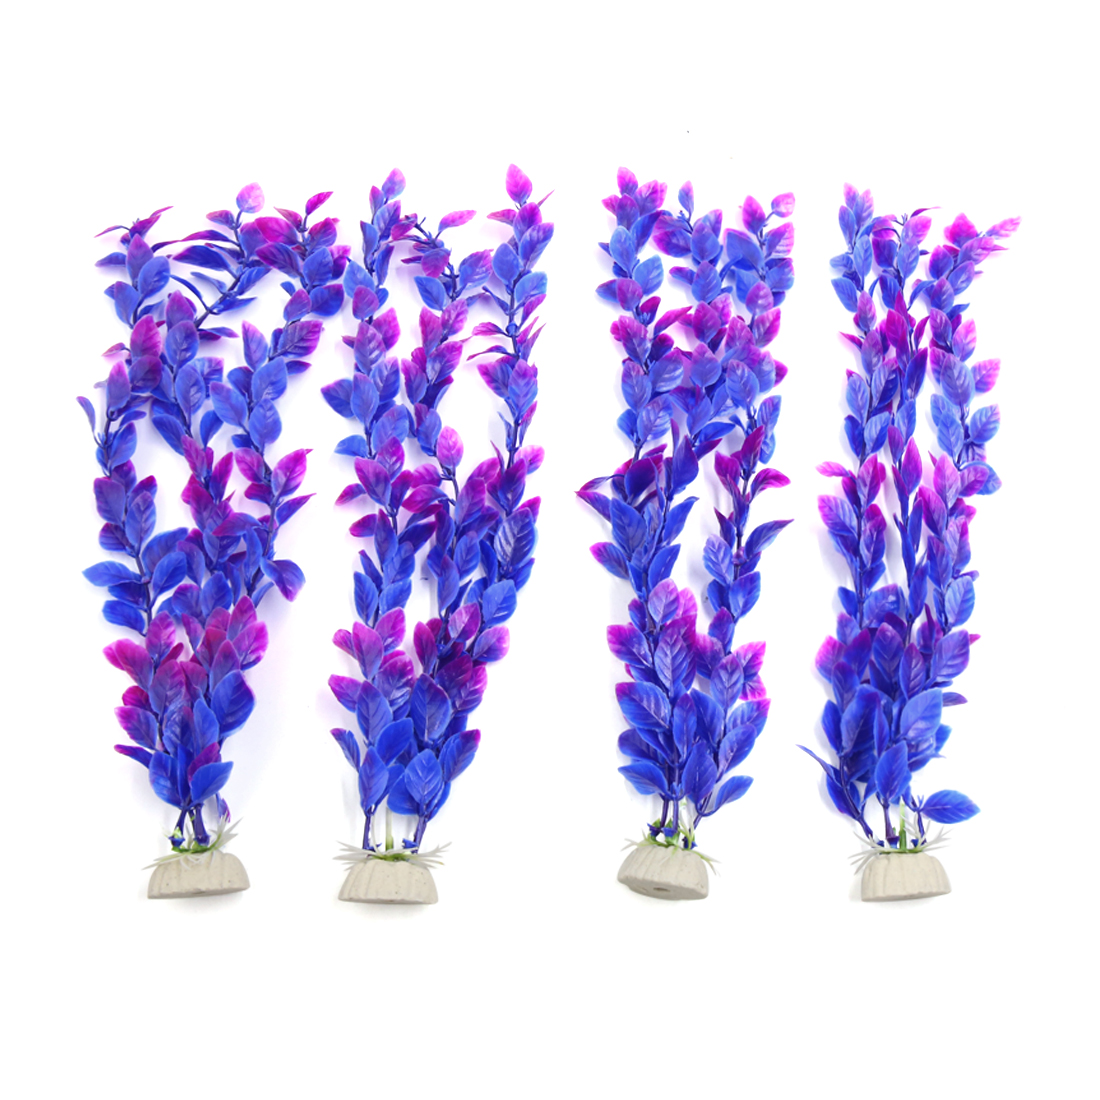 4pcs Purple Plastic Aquarium Fish Tank Aquatic Water Plant Decoration Ornament